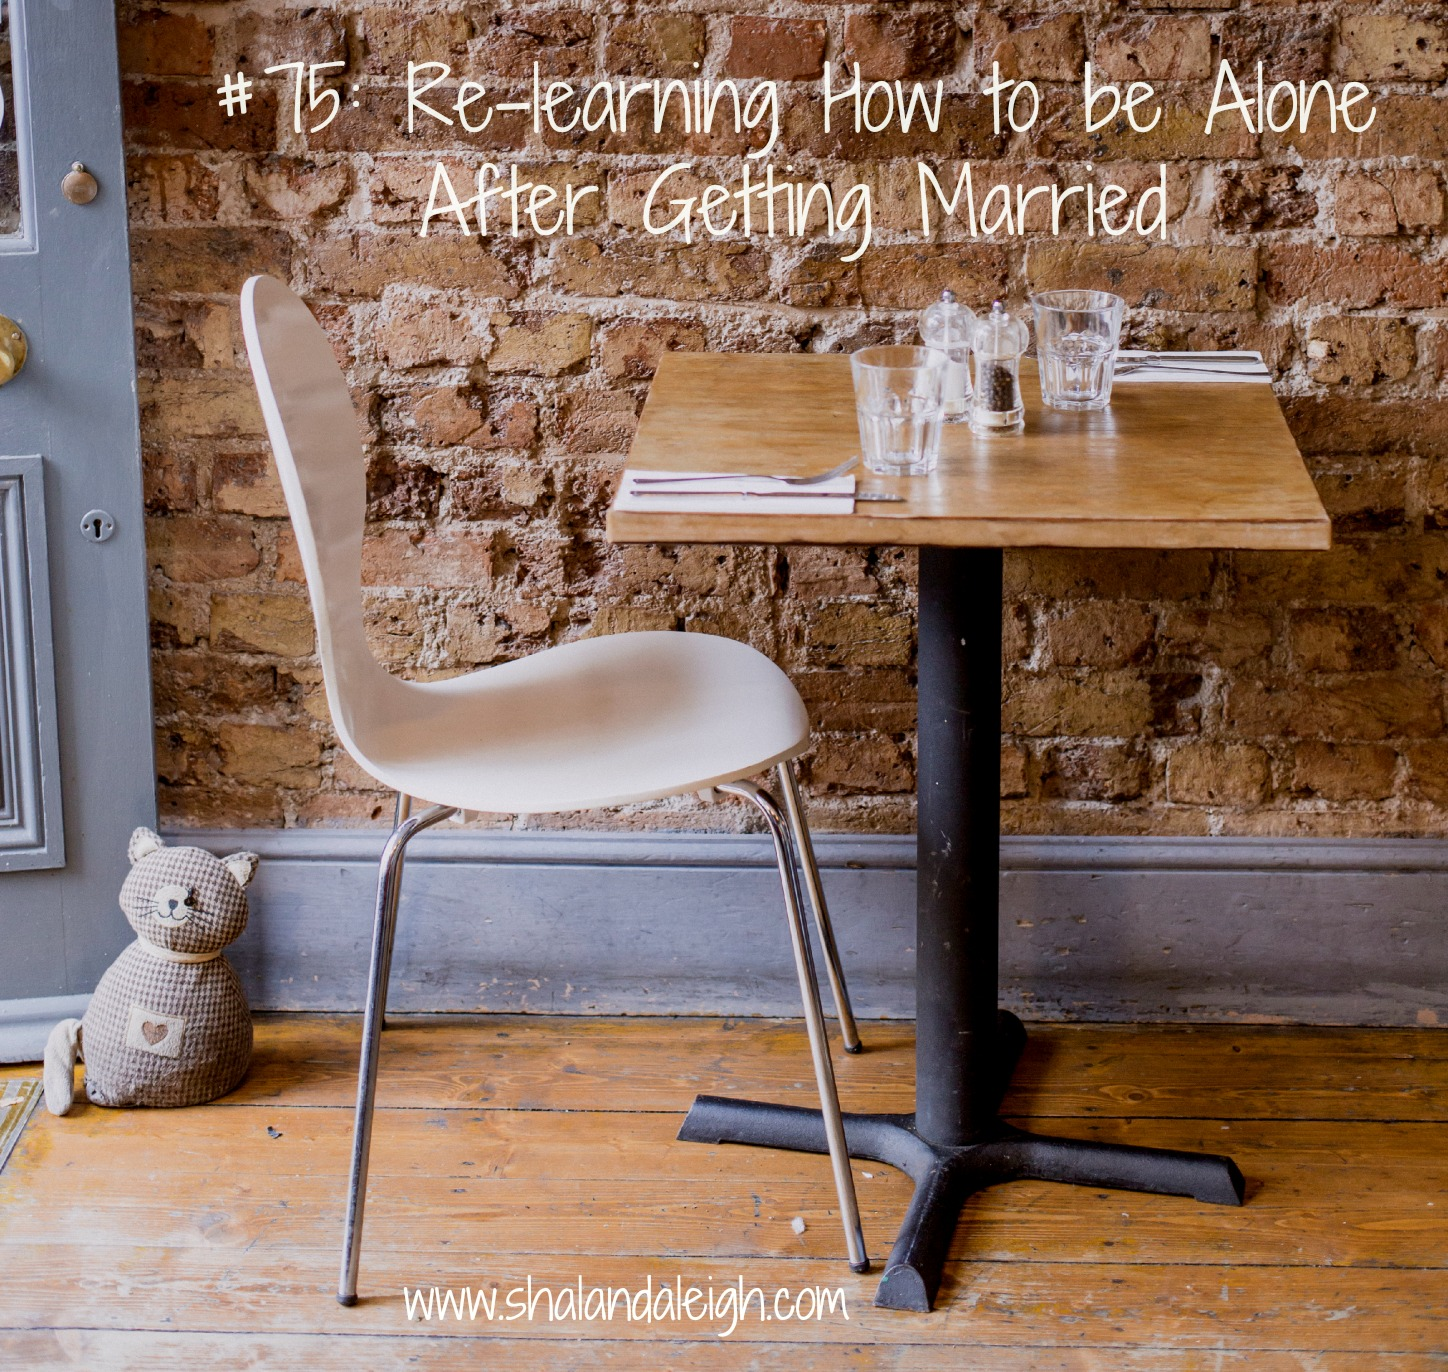 #75 Re-learning How to be Alone After Getting Married - www.shalandaleigh.com